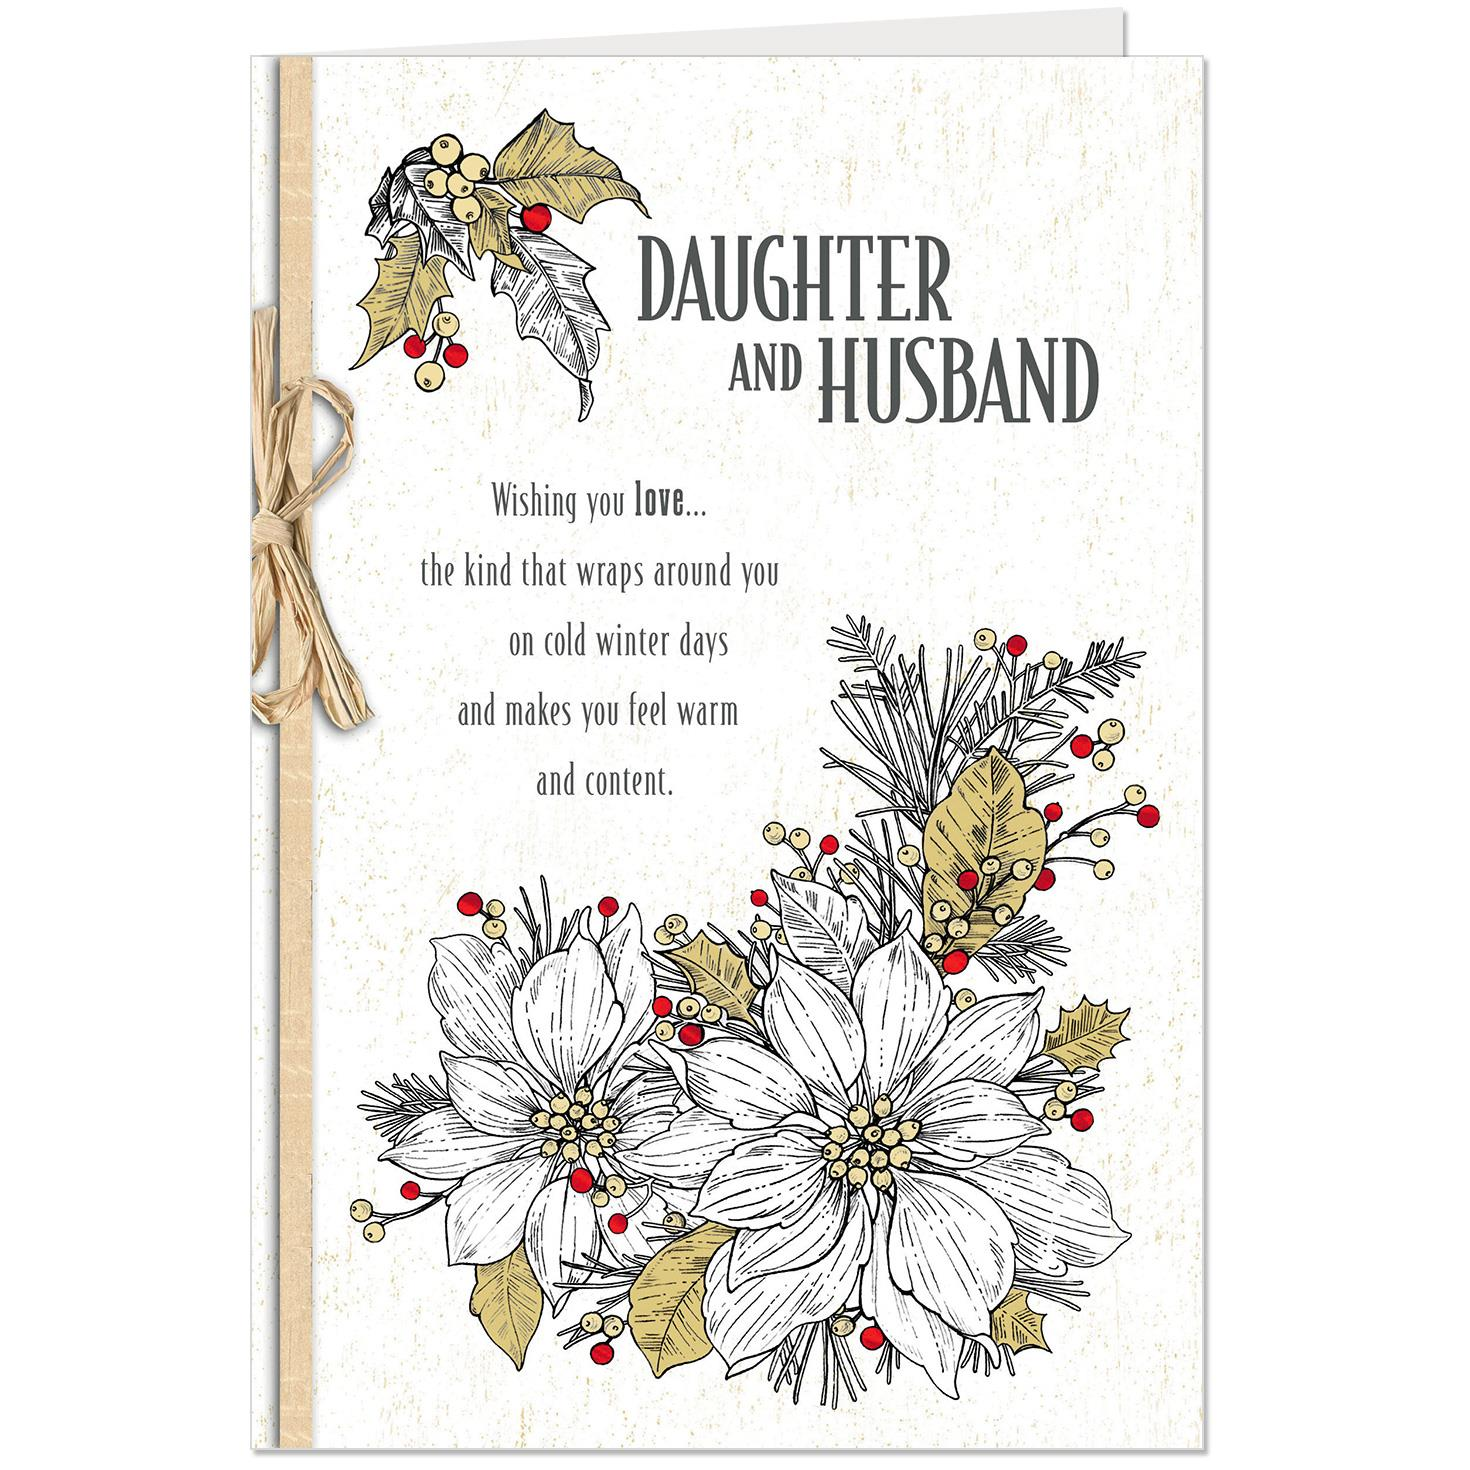 Wishing You Joy Christmas Card For Daughter And Her Husband